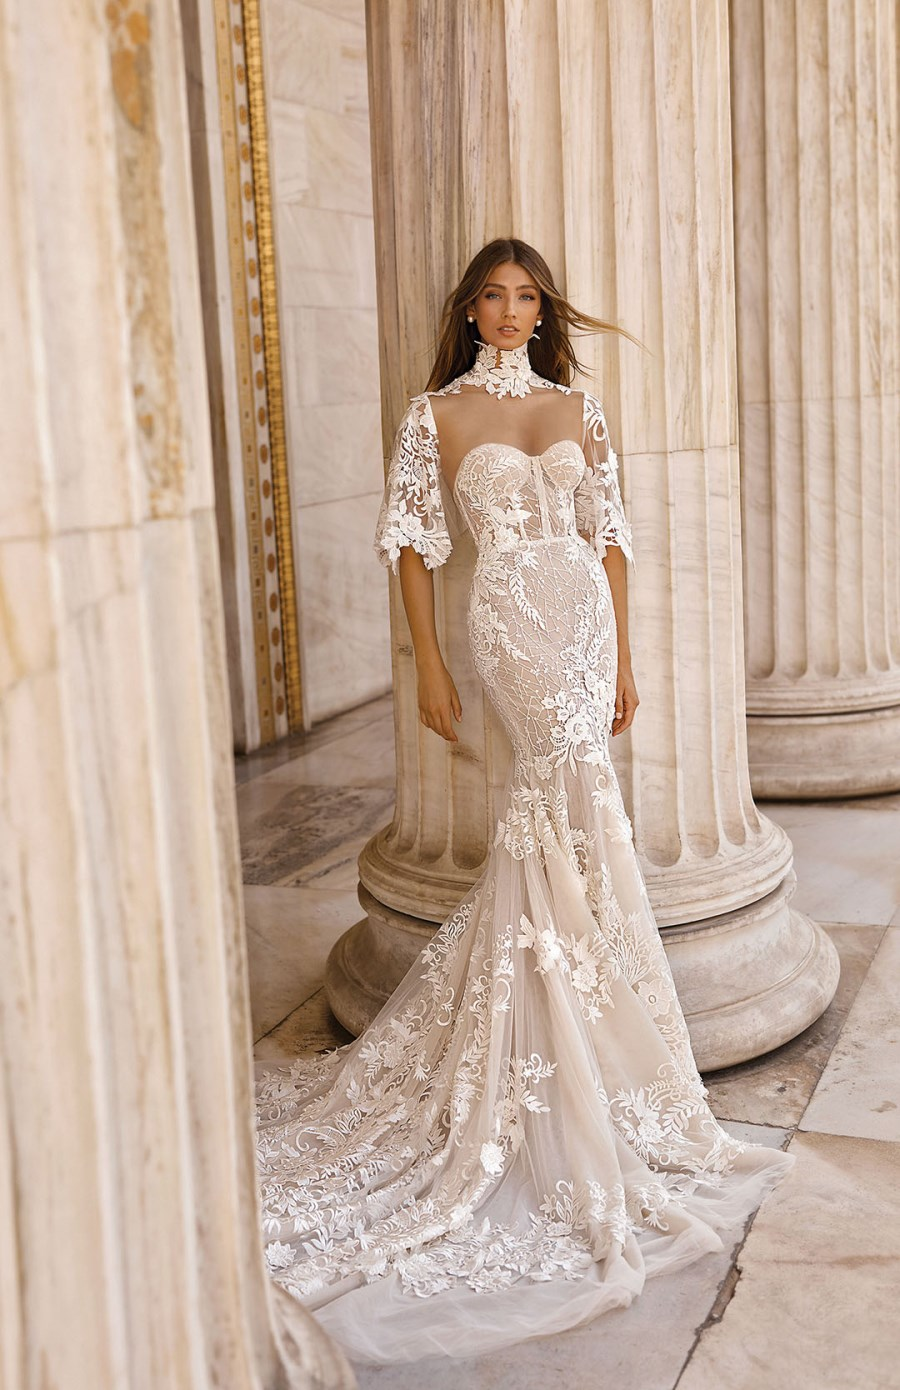 berta-wedding-dress-2019-1 (4)_1